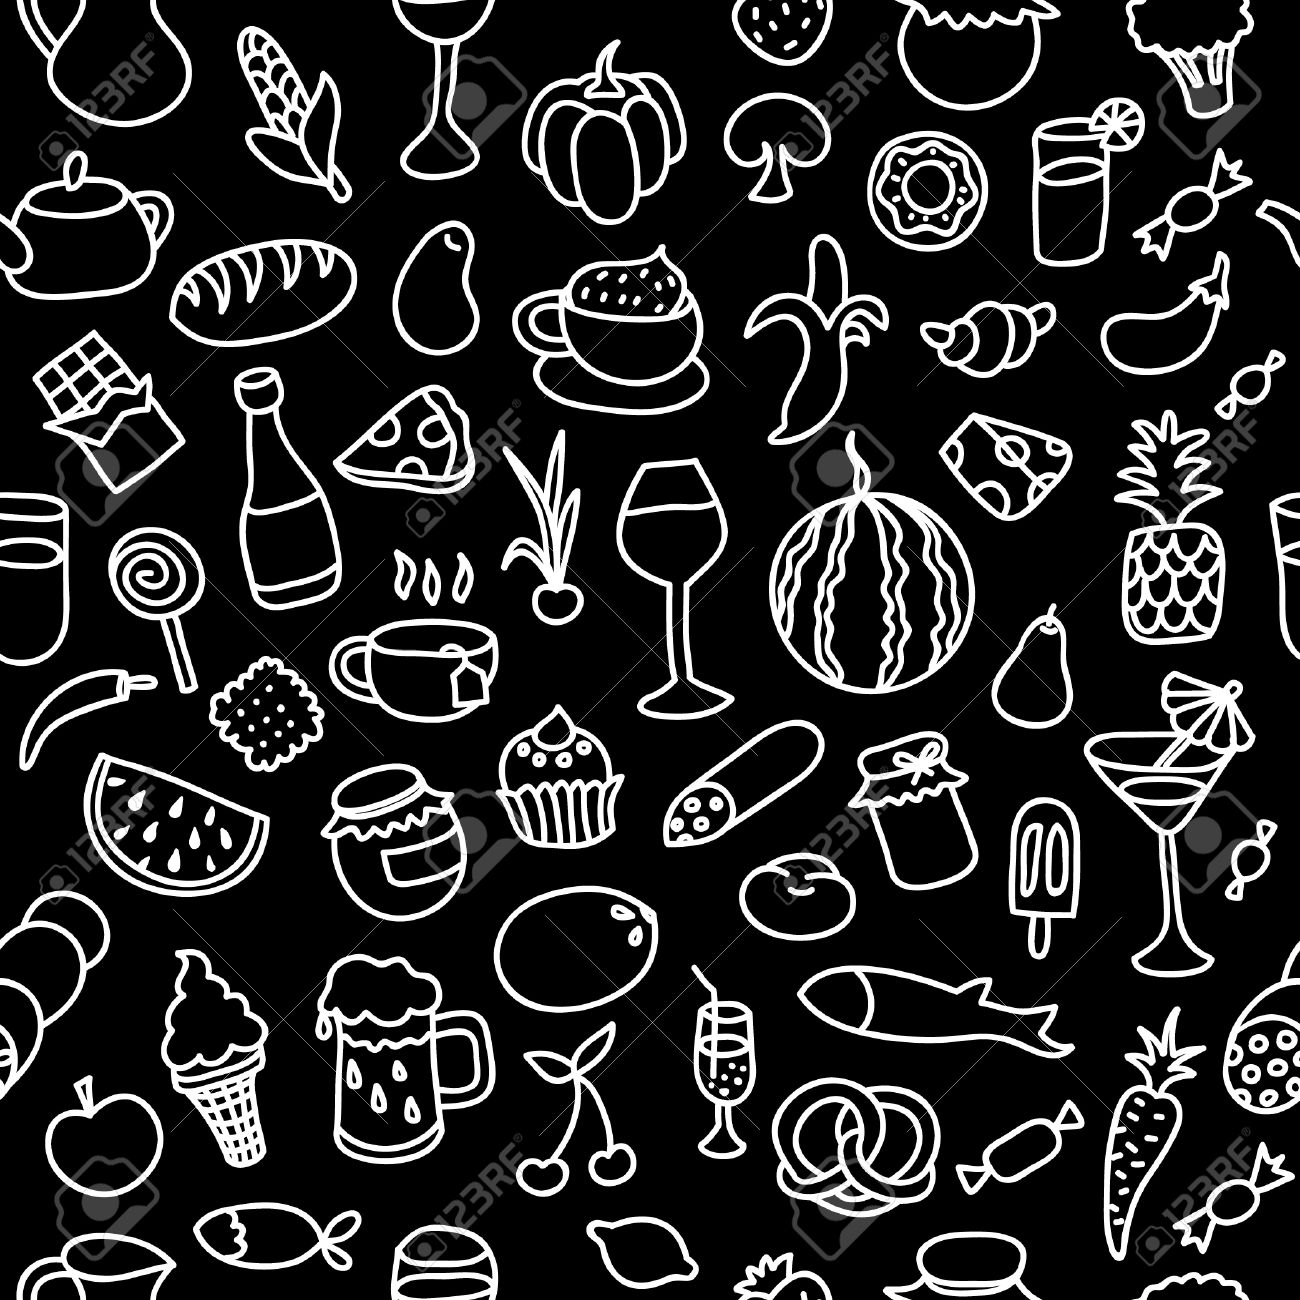 seamless pattern with food elements endless texture for wallpaperseamless pattern with food elements endless texture for wallpaper, fill, web page background